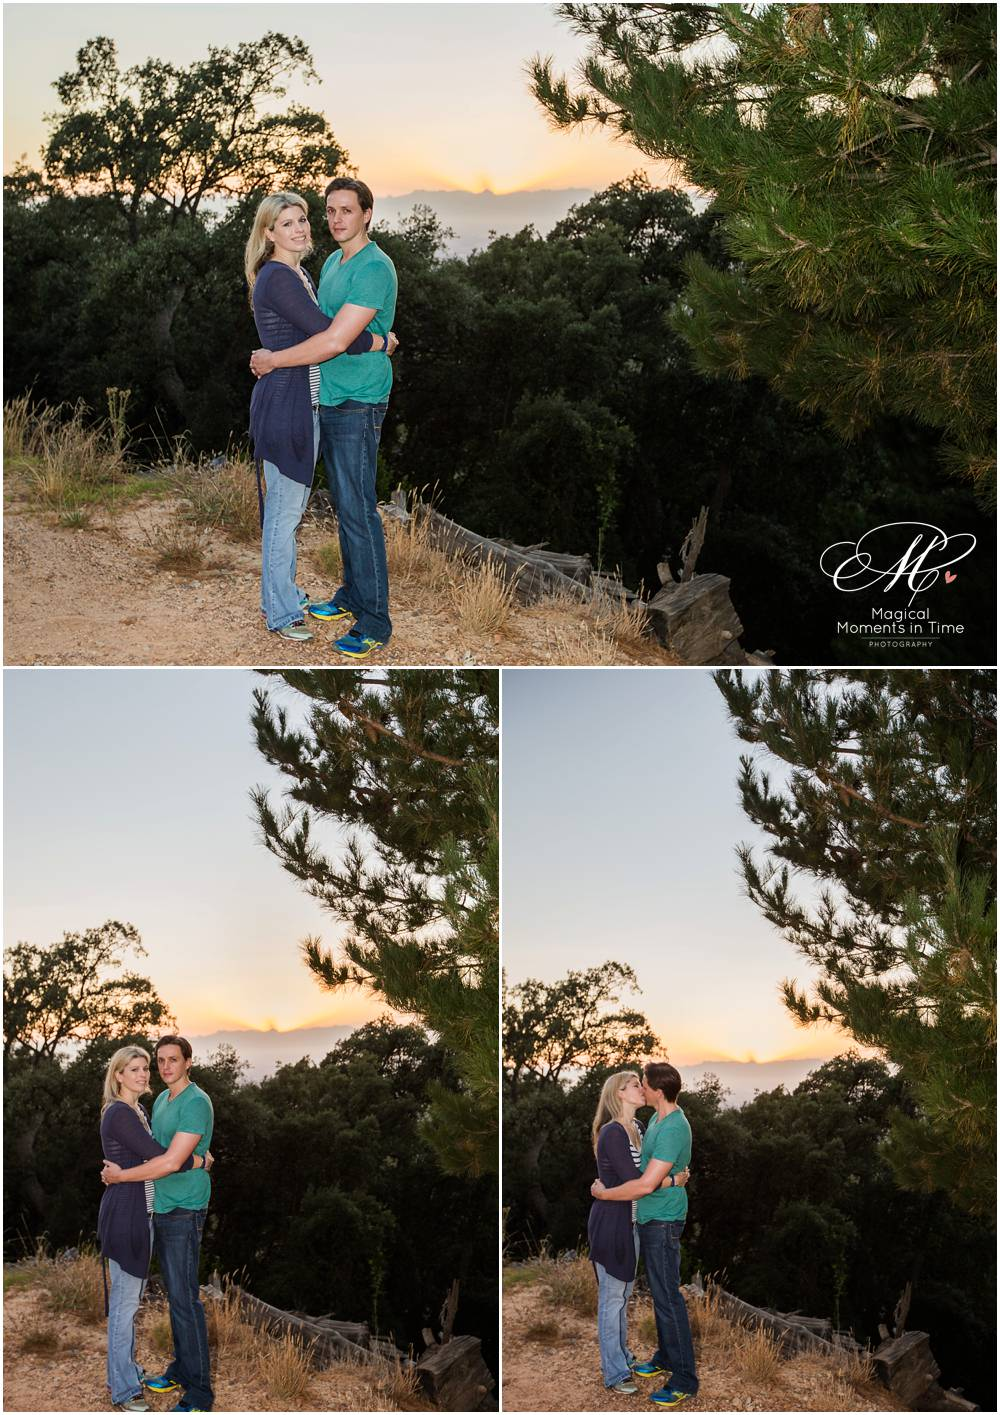 Sunrise engagement in the forest